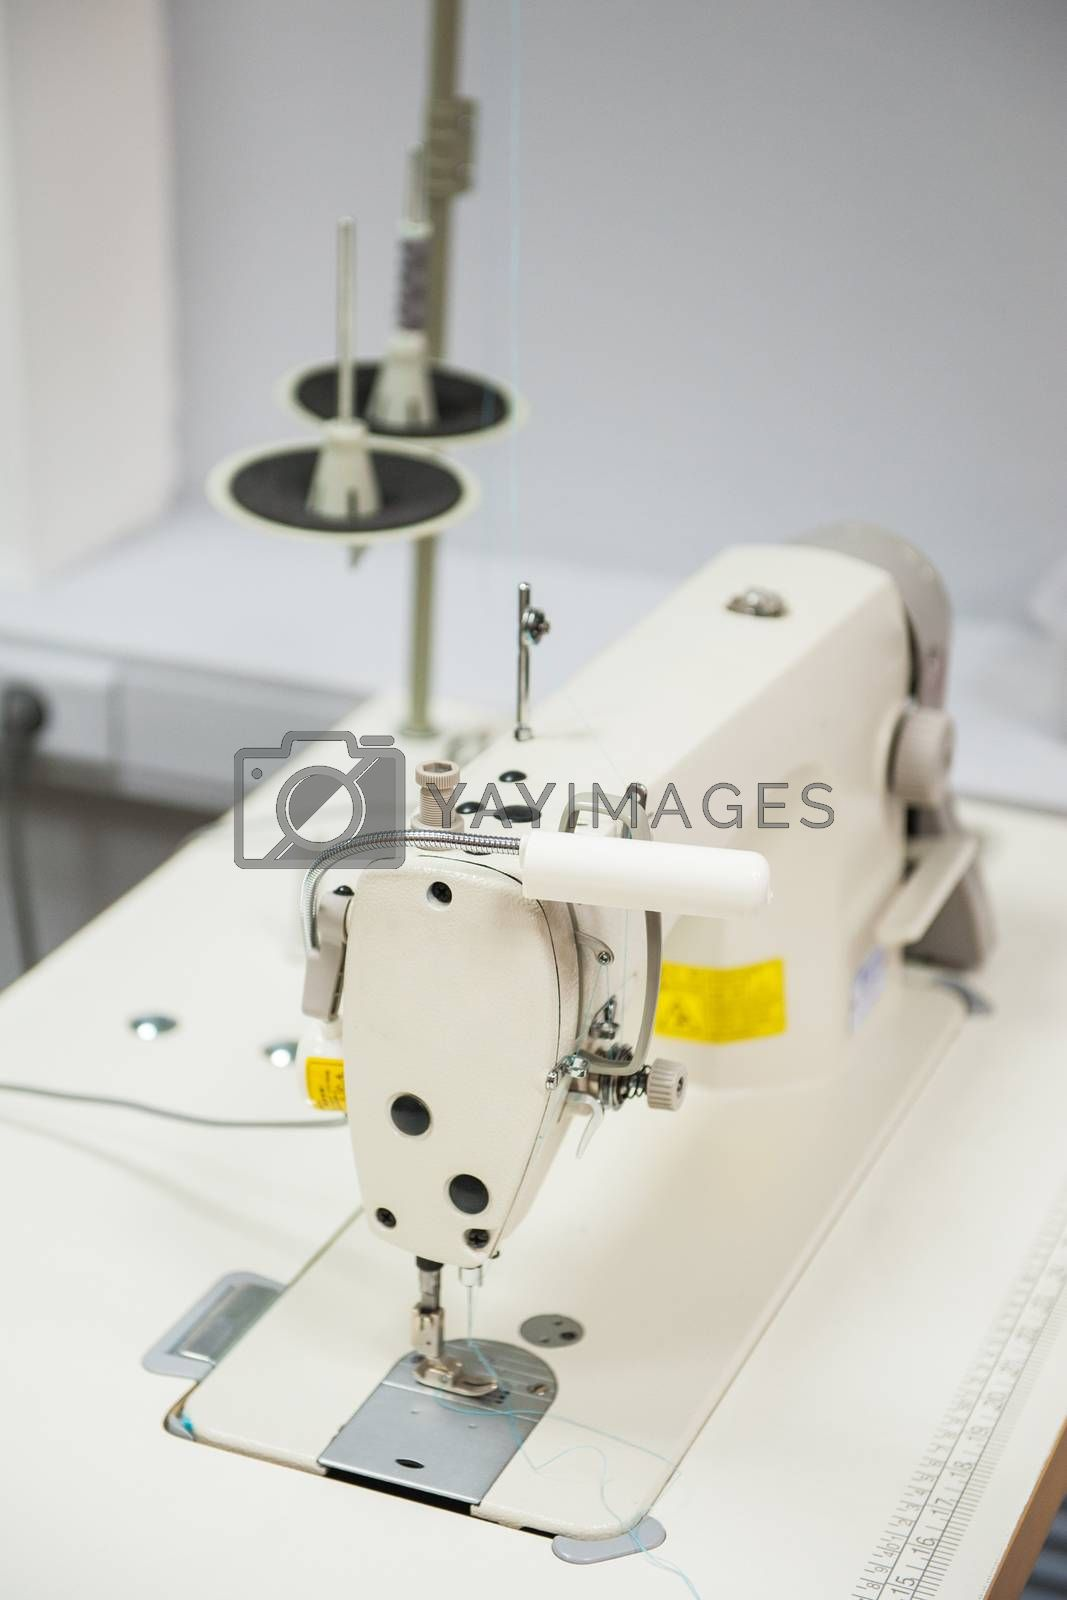 Industrial sewing machine in tailor's workshop